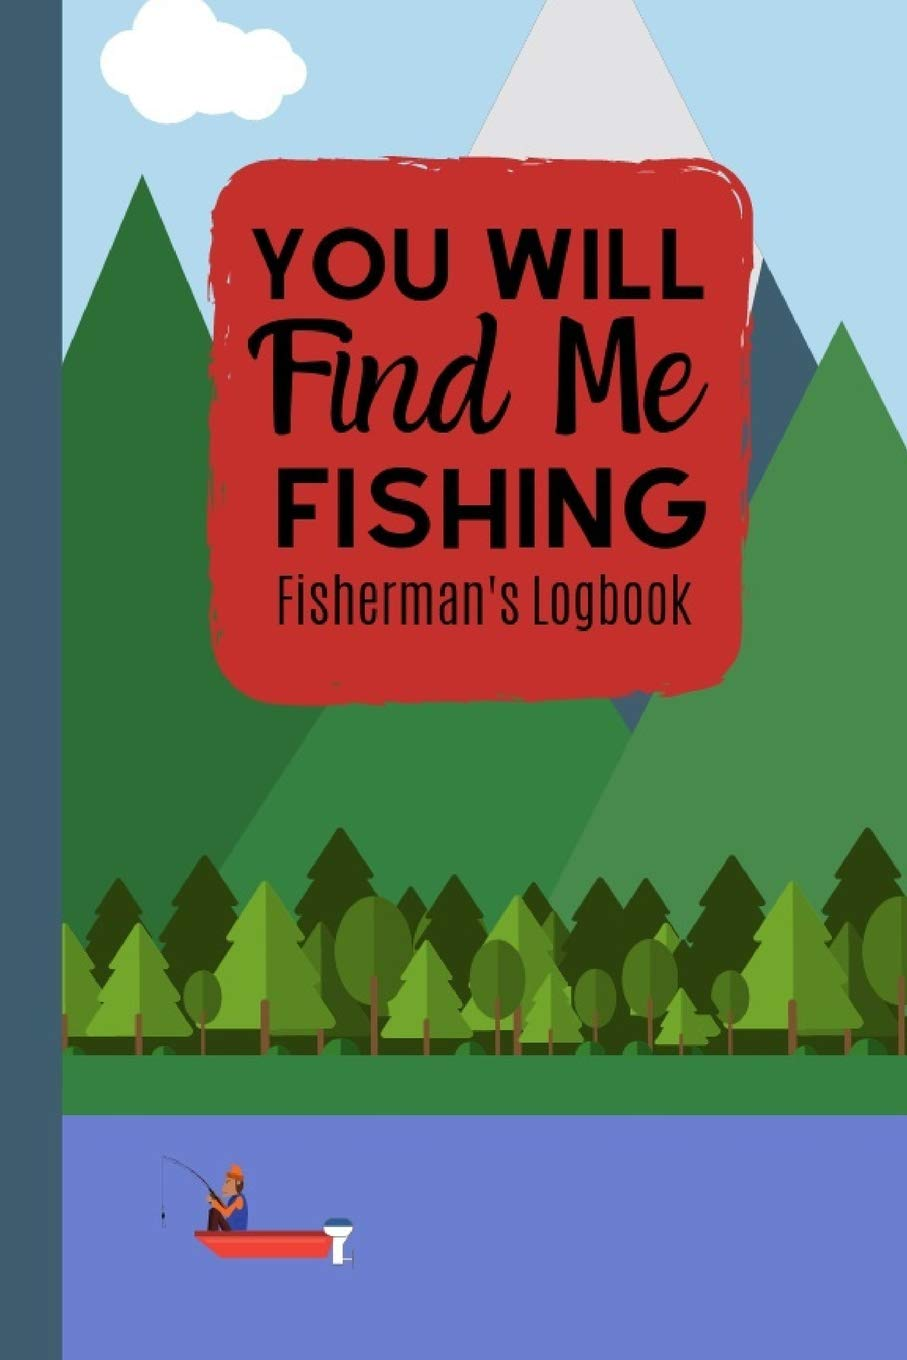 You Will Find Me Fishing Fisherman's Logbook: The Perfect And Organised Way To Keep A Record Of All The Fish You Catch